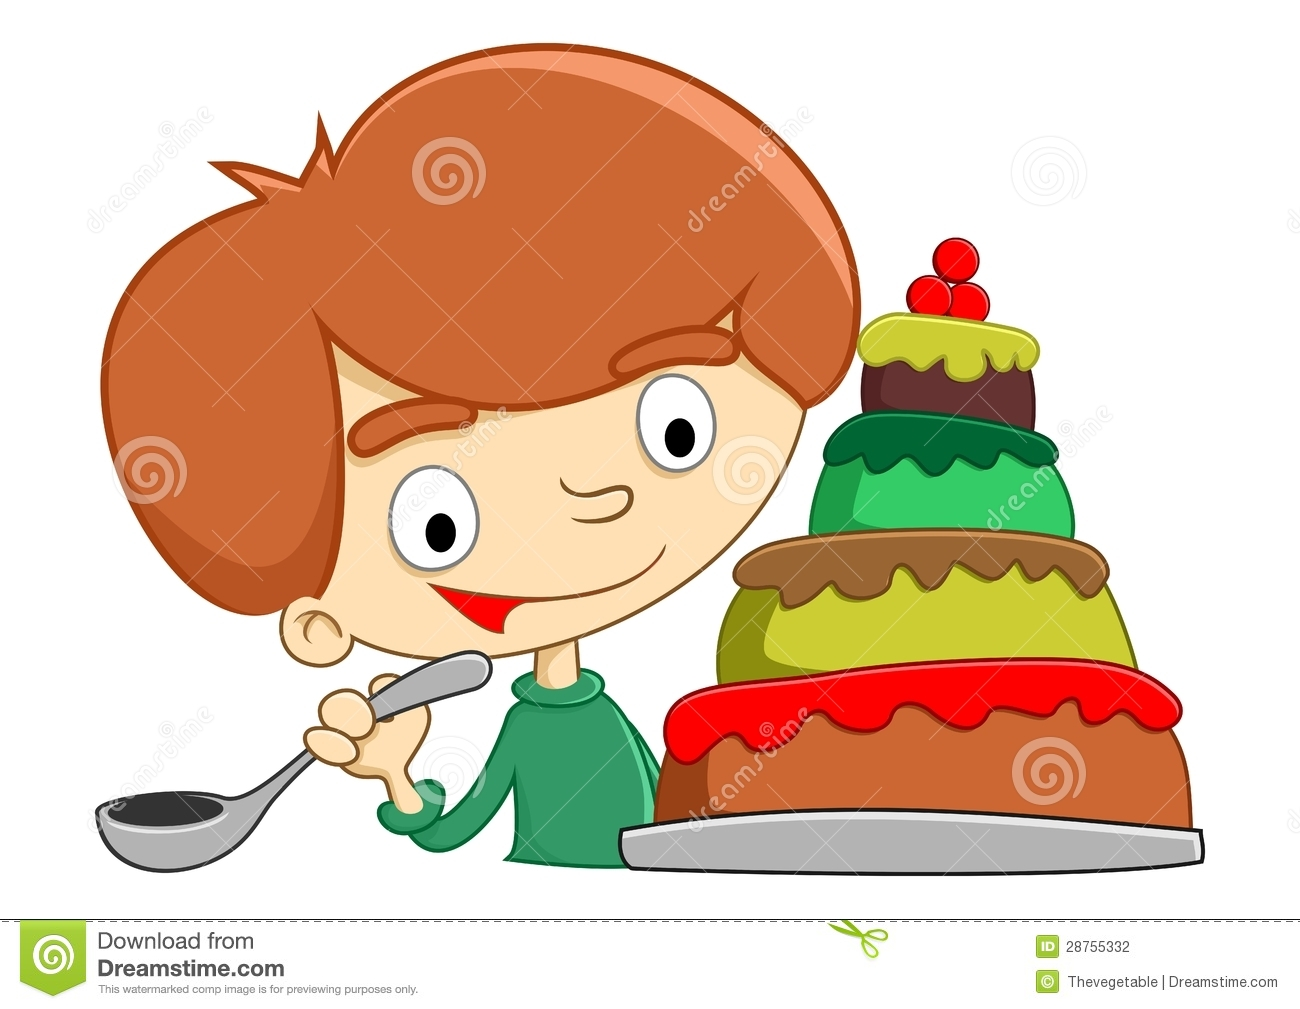 Baby Eating Cake Clipart : Eat Cake Stock Photography - Image: 28755332